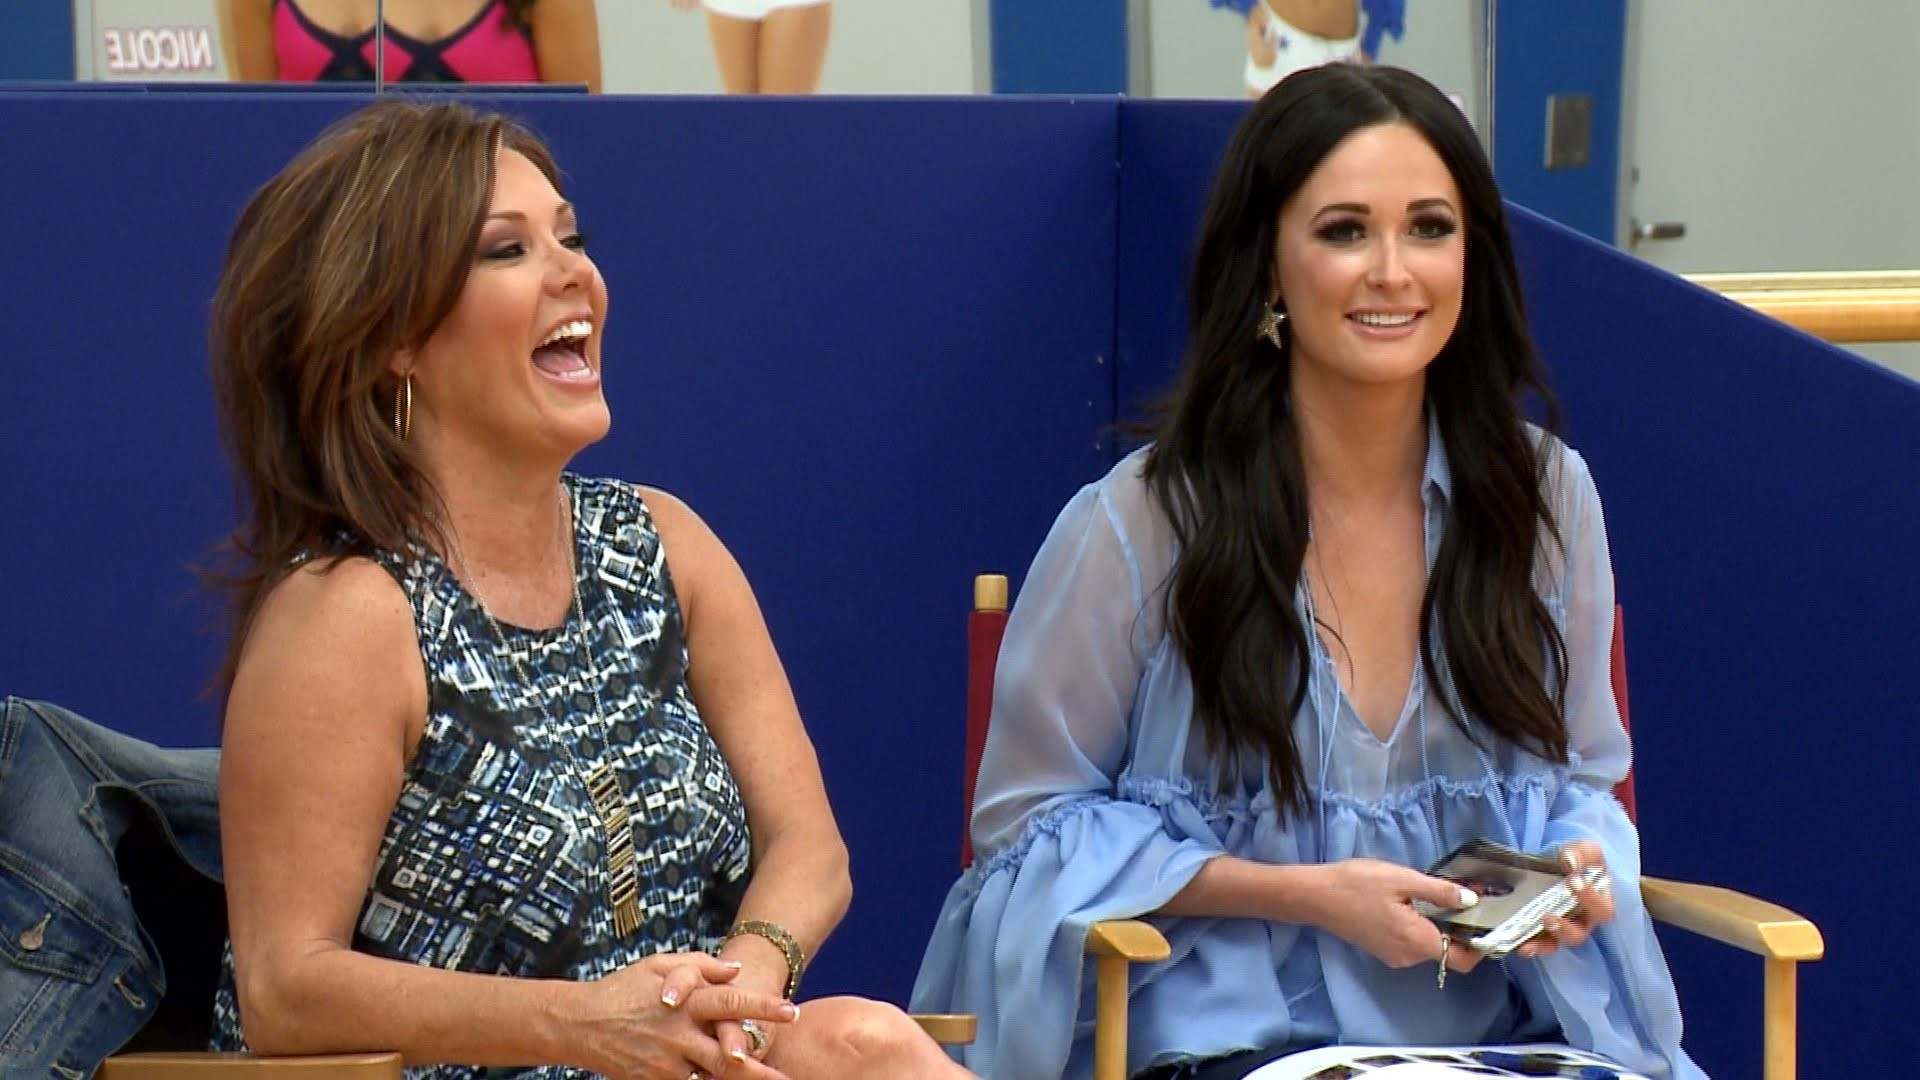 Kacey Musgraves Is This Week's Special Guest on Dallas Cowboys Cheerleaders:  Making the Team – YouTube